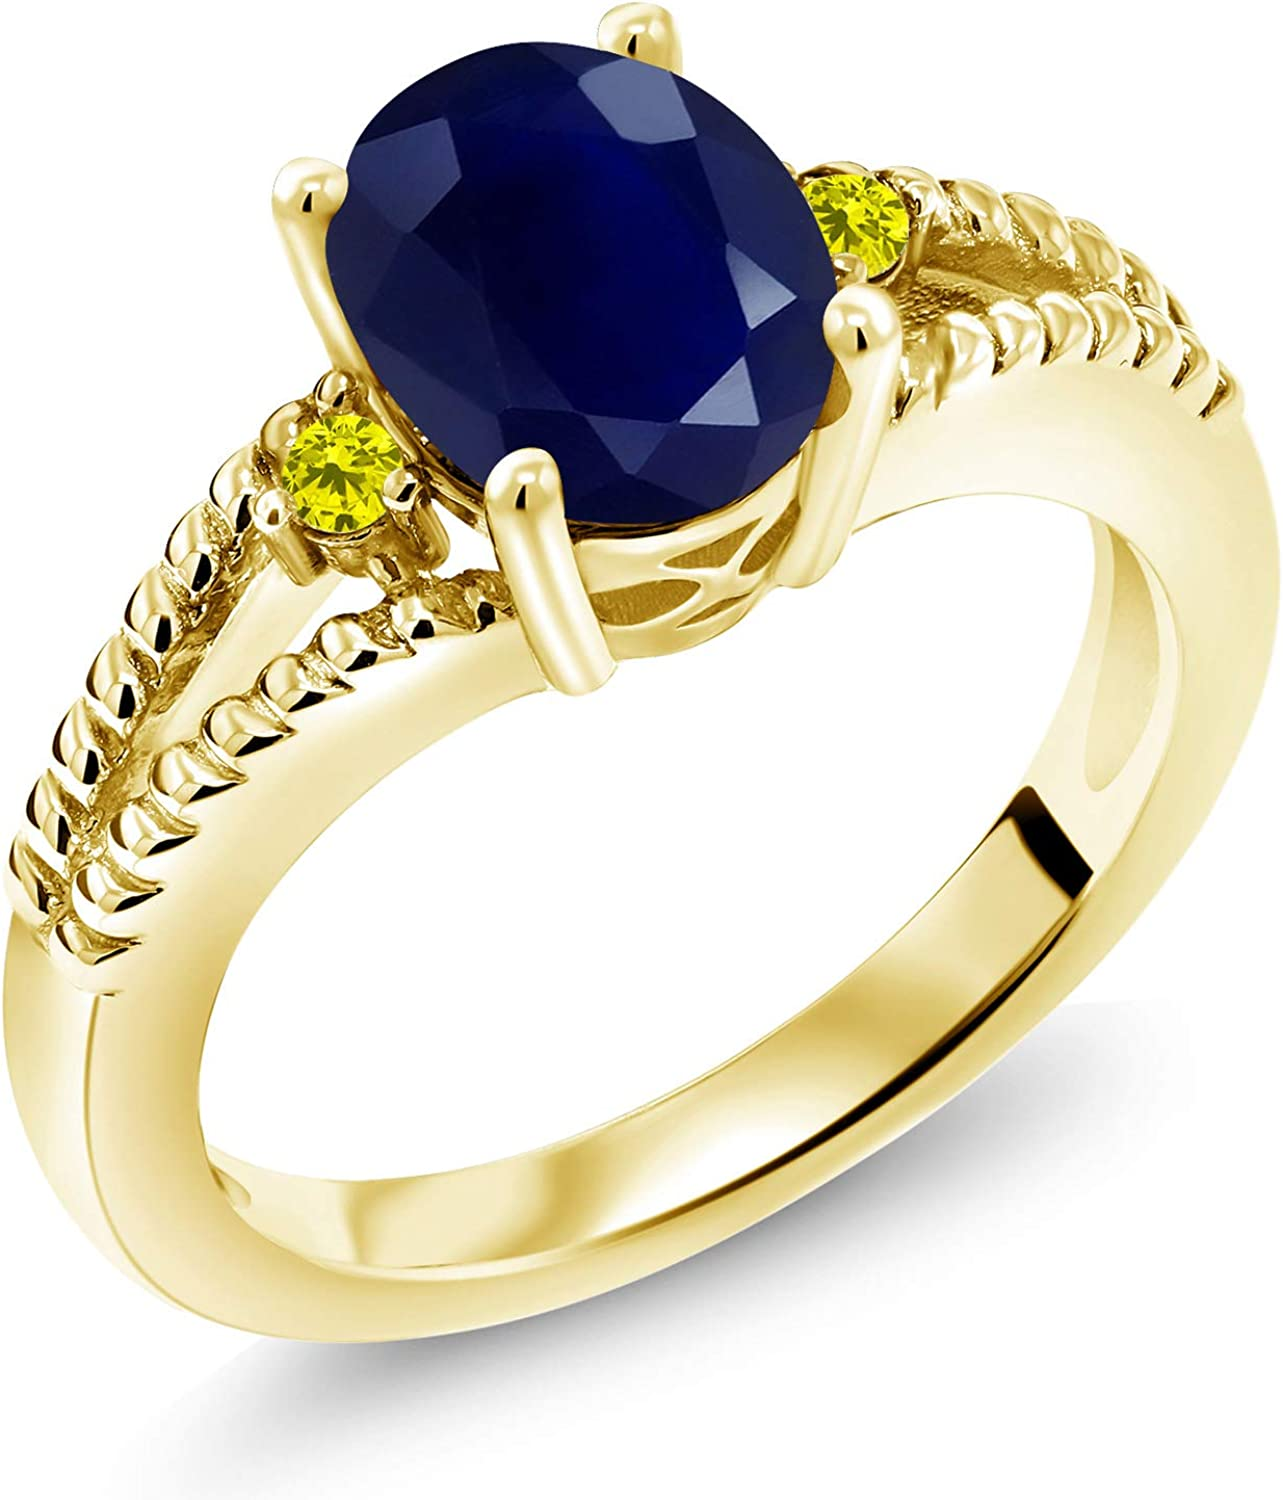 Gem Stone King 2.55 Ct Oval Spring new work one after another Japan's largest assortment Sapphire Blue Yel 18K Diamond Canary